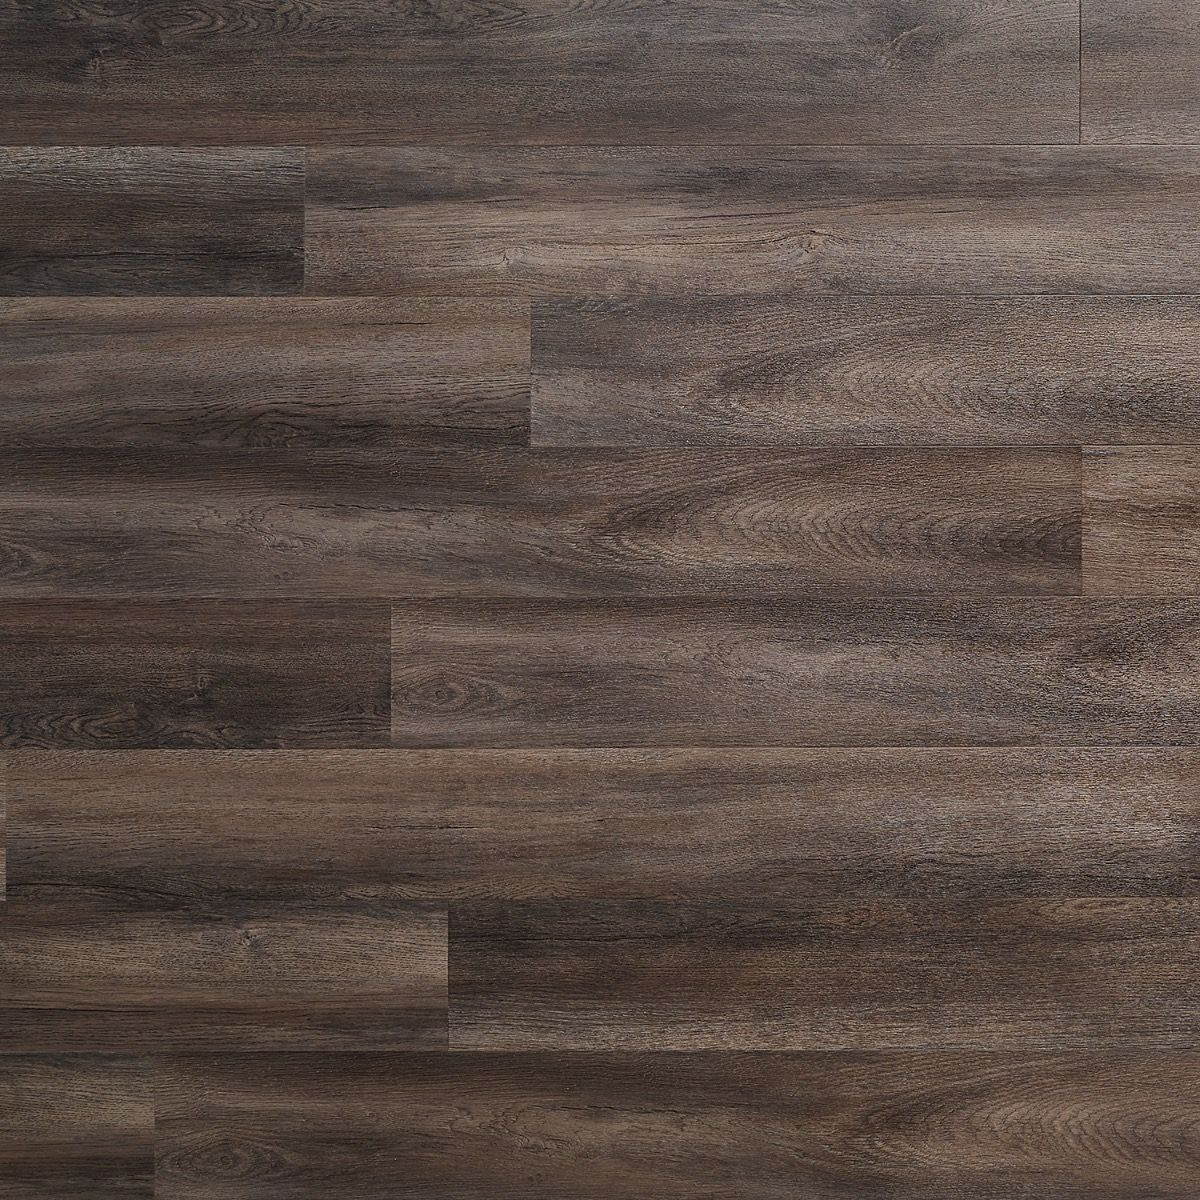 Katone Aged Oak Peppercorn 6x48 Glue Down Luxury Vinyl Tile